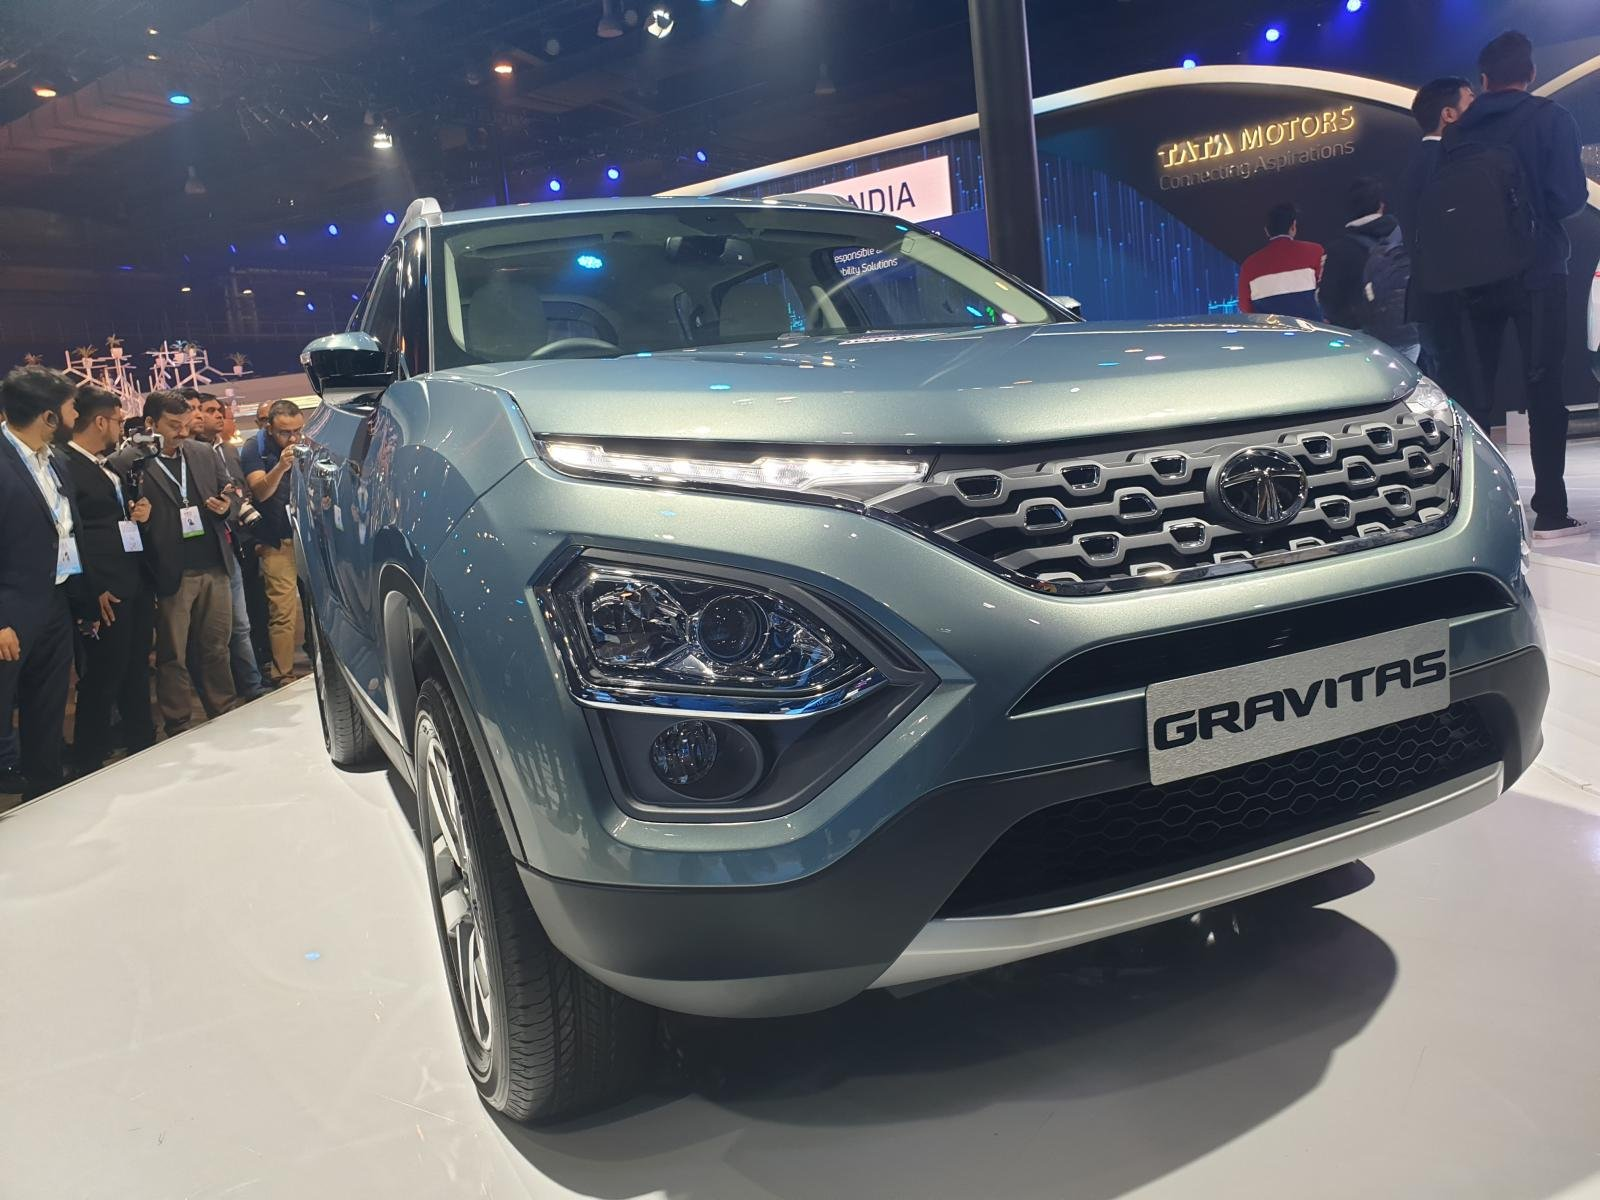 Best 7 Seater Suvs In India Under 20 Lakh To Be Launched Soon